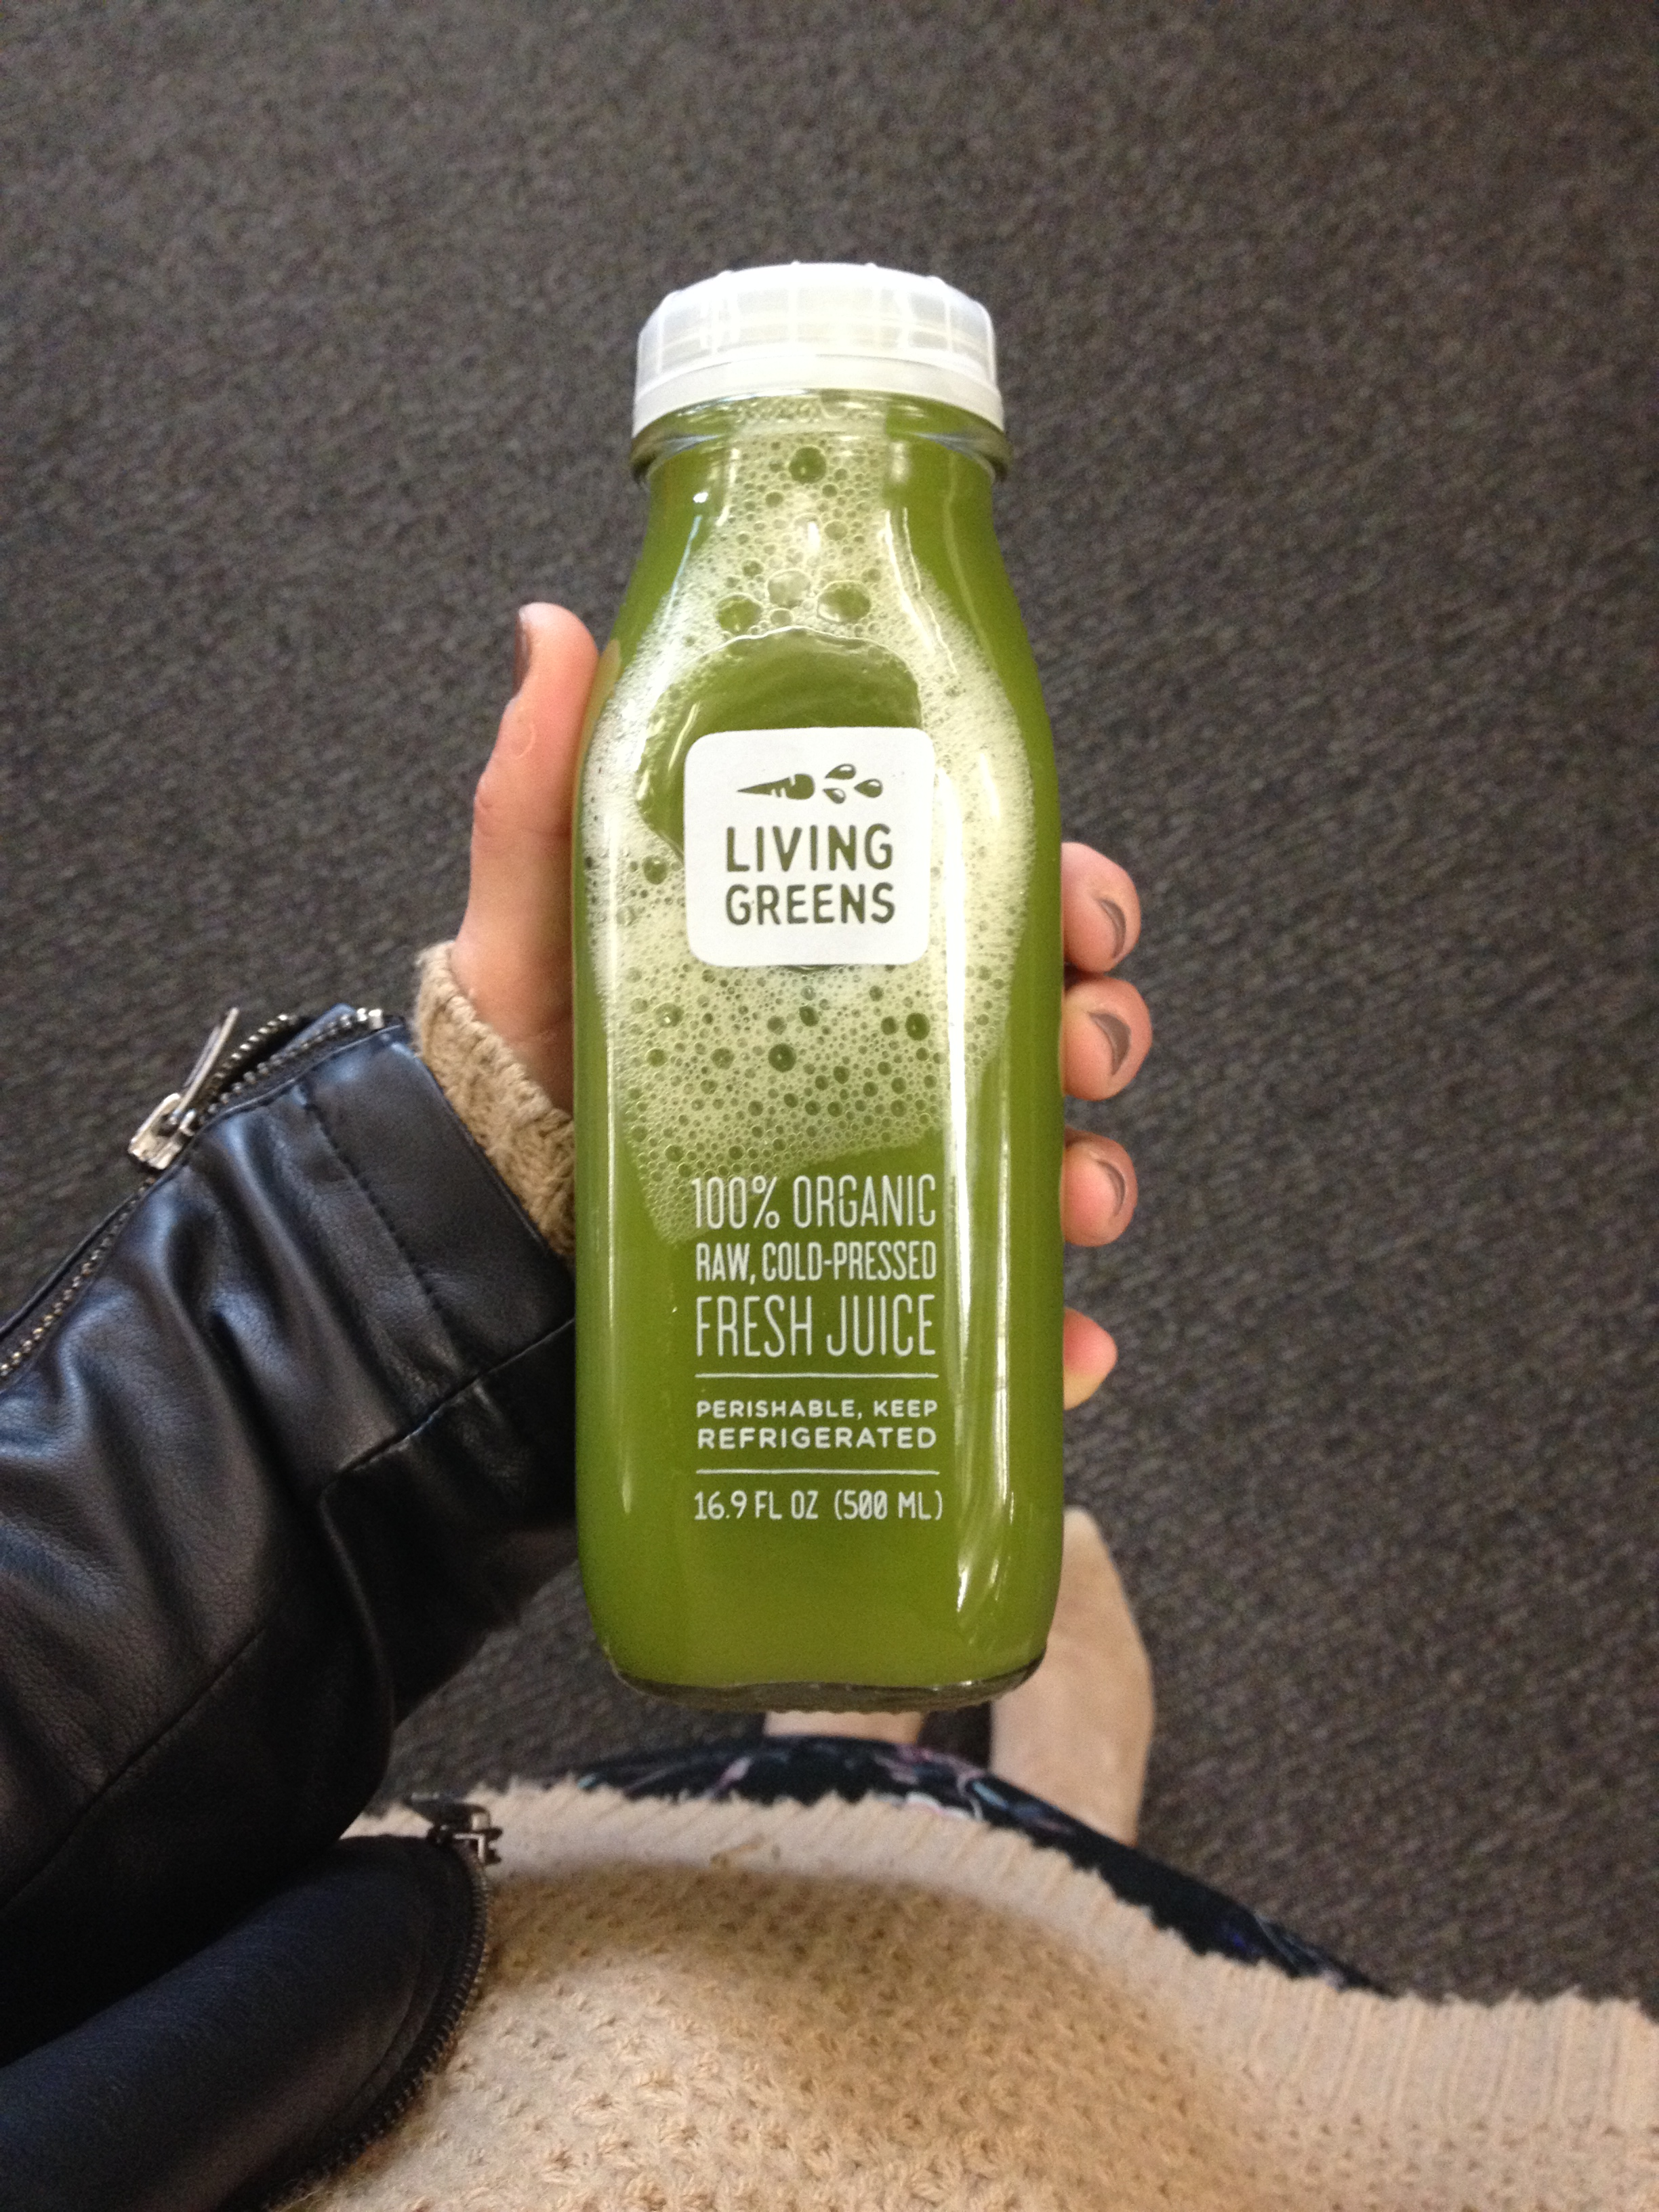 Loved my first Living Greens experience!